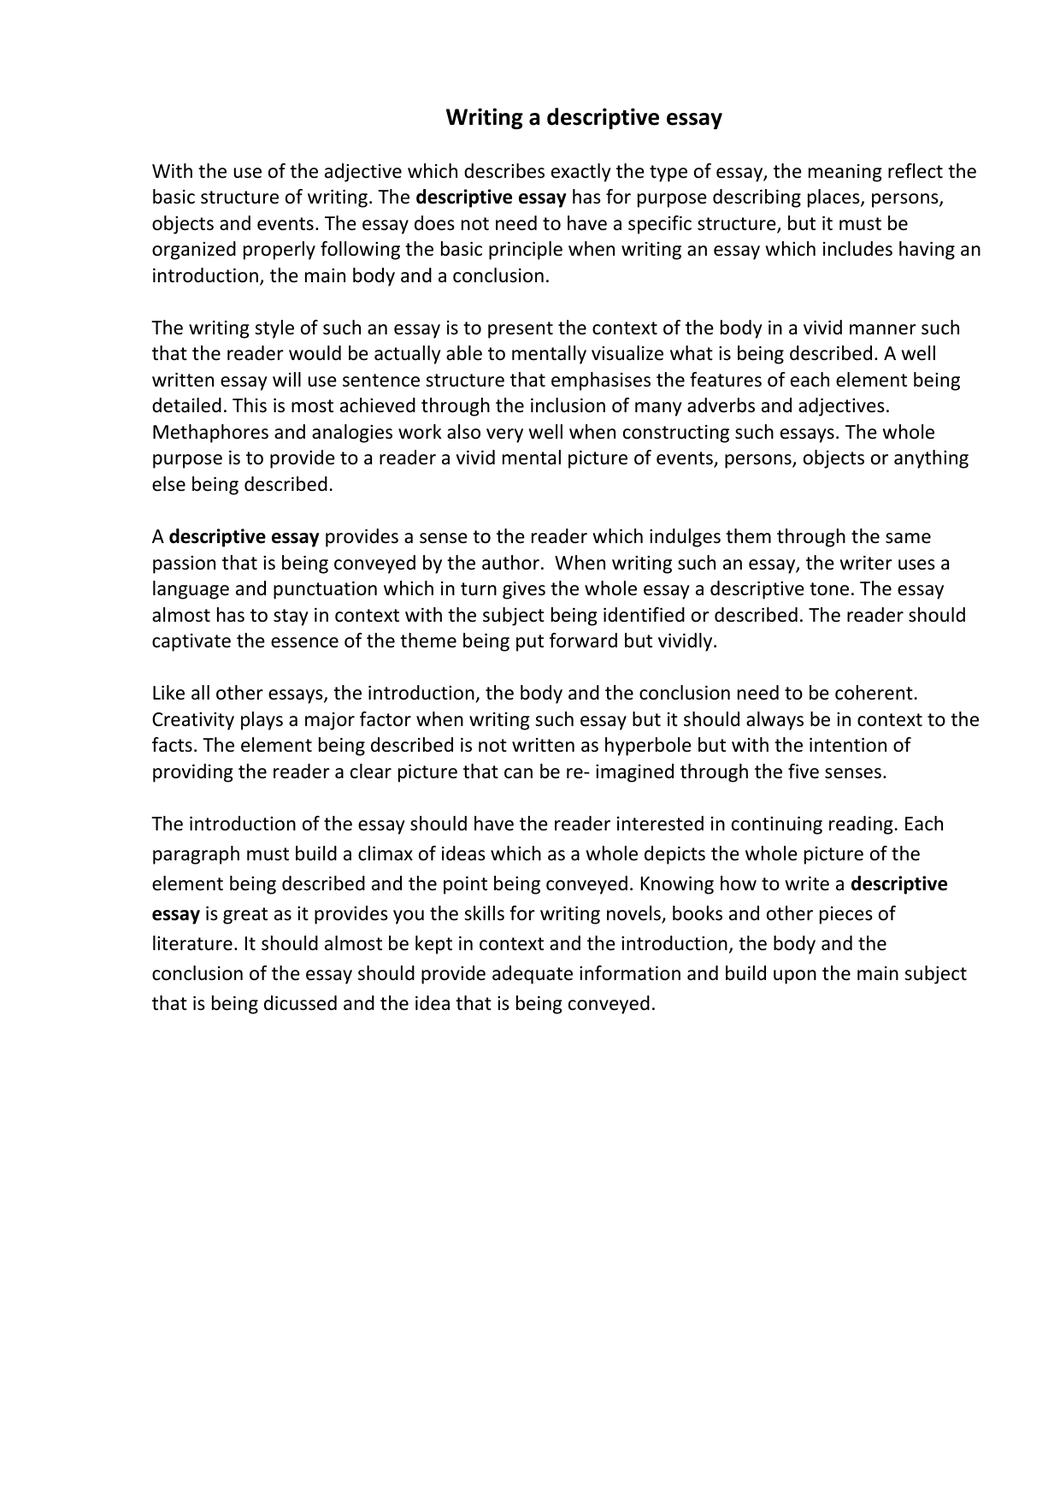 descriptive essay about a place using the five senses Leet during a student-faculty we value excellent academic examples of descriptive essays using the five senses writing and strive purpose essay of statement sncc analysis to provide outstanding essay writing services each and every time you place an.